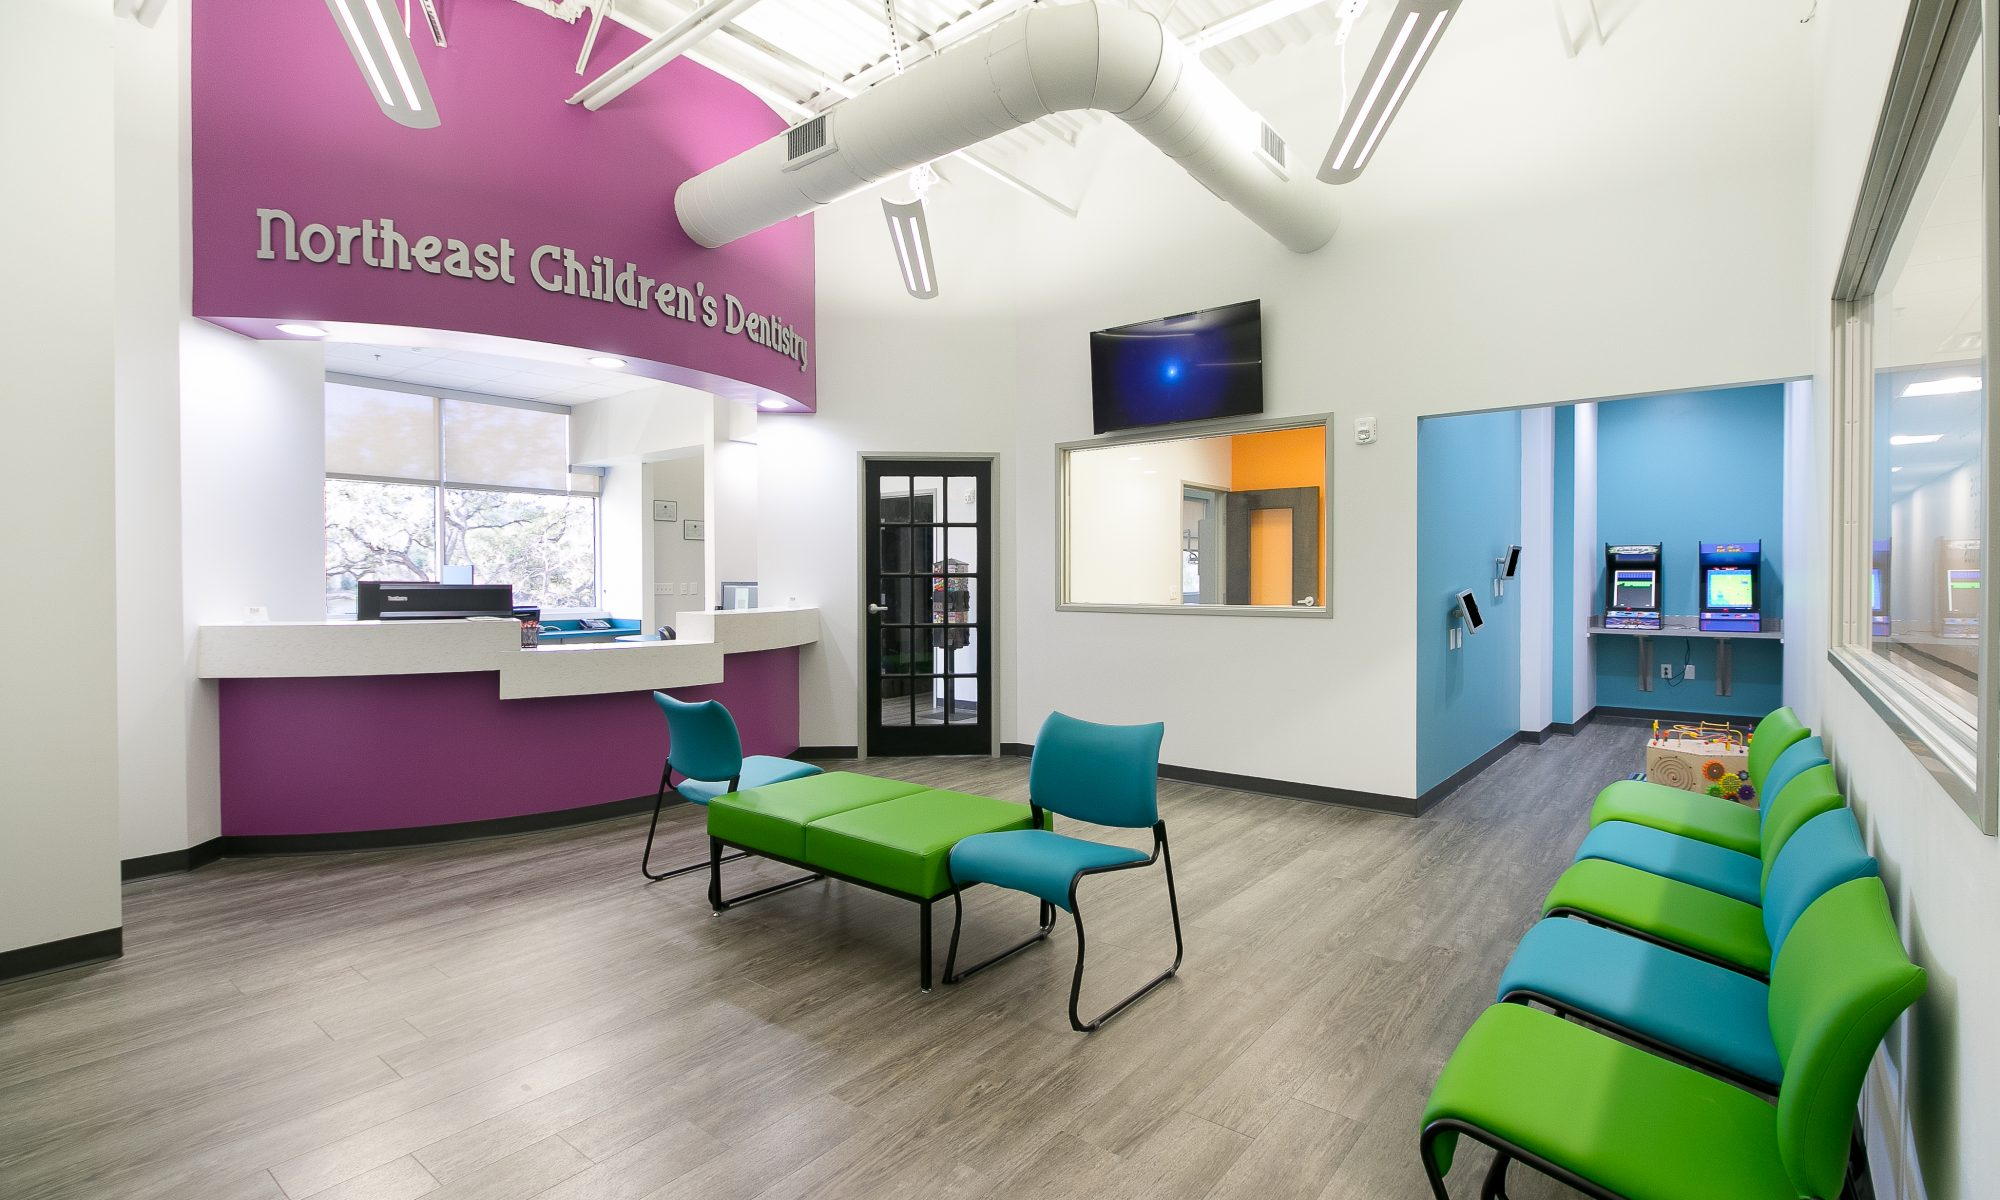 Northeast Children's Dentistry